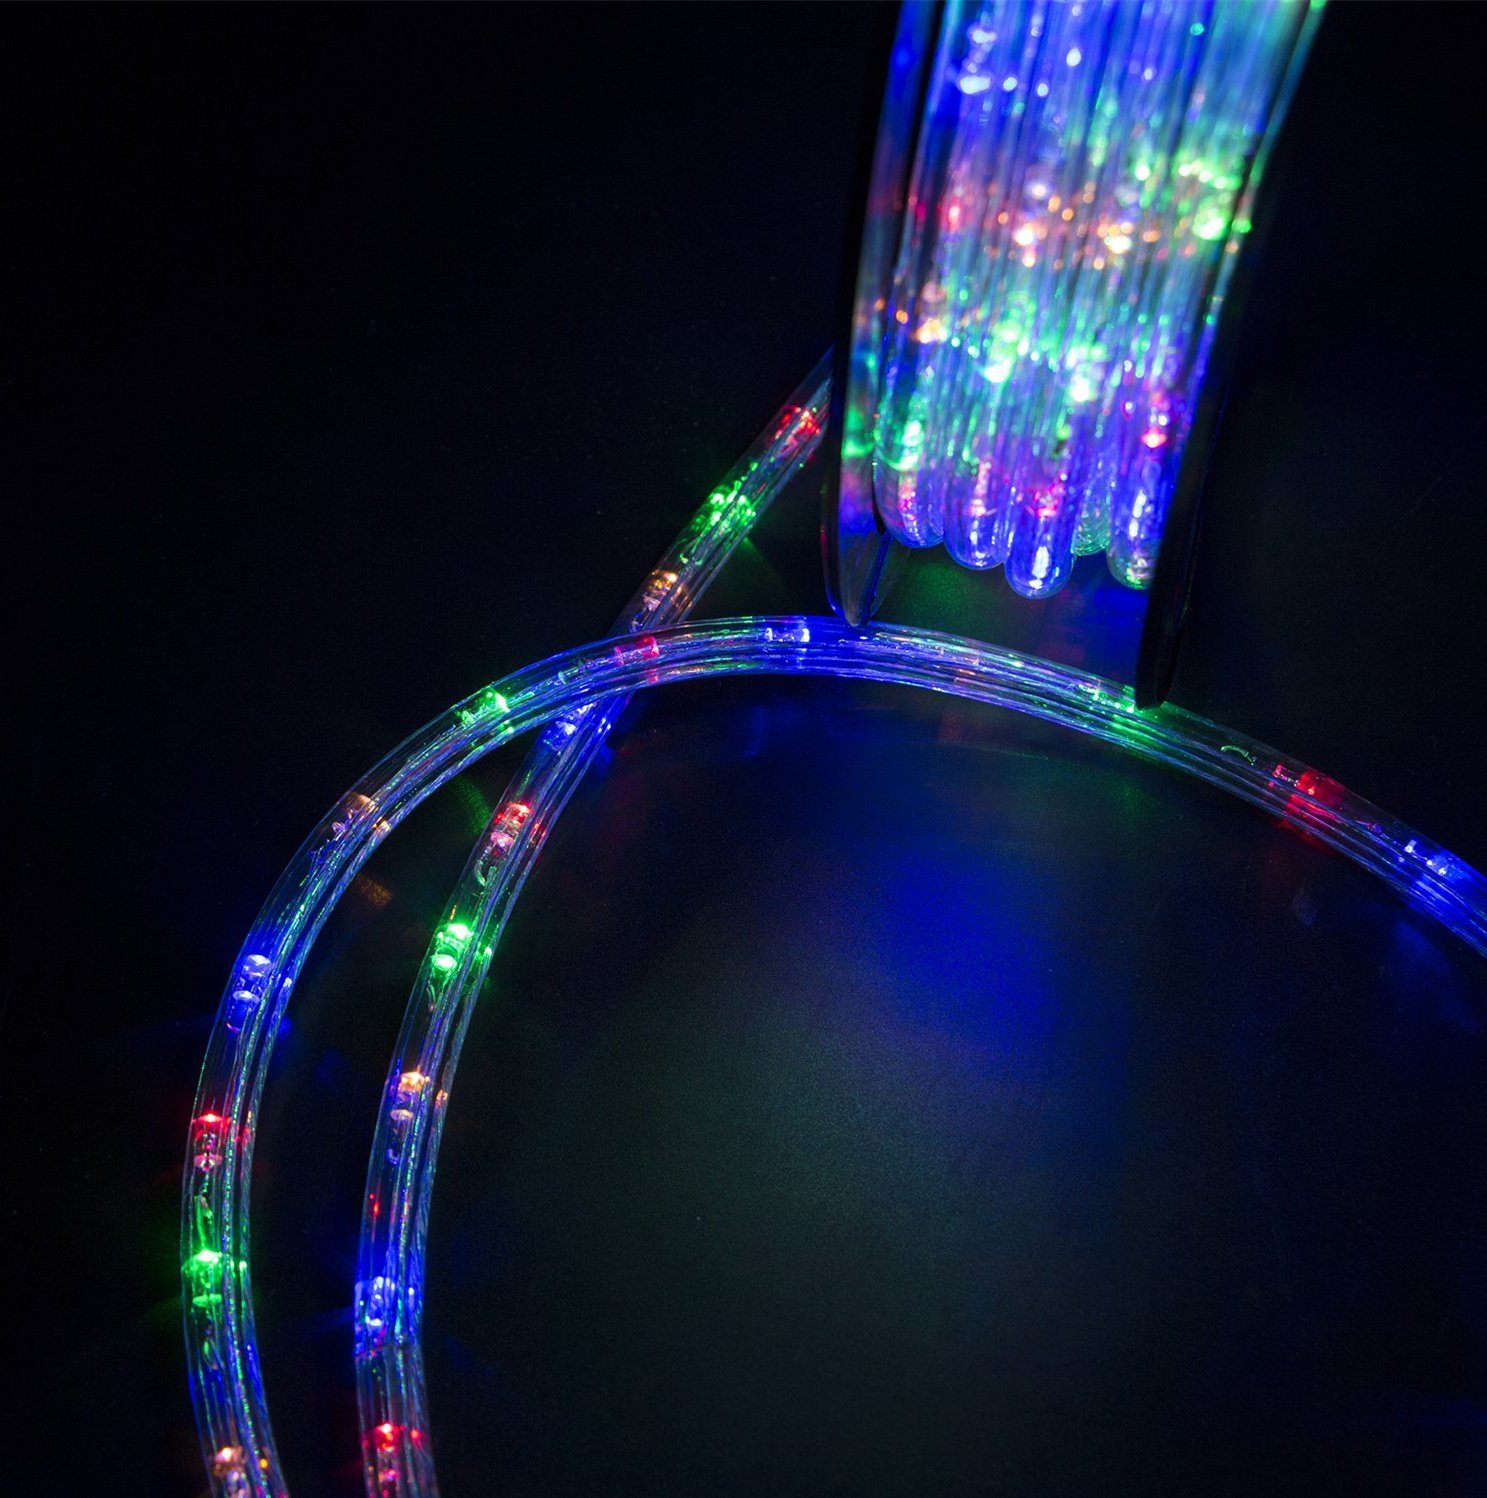 HYD-Parts 150Ft LED Rope Light,1620 LEDs Indoor Outdoor Waterproof LED Strip Lights Christmas Decorative Lighting Colorful